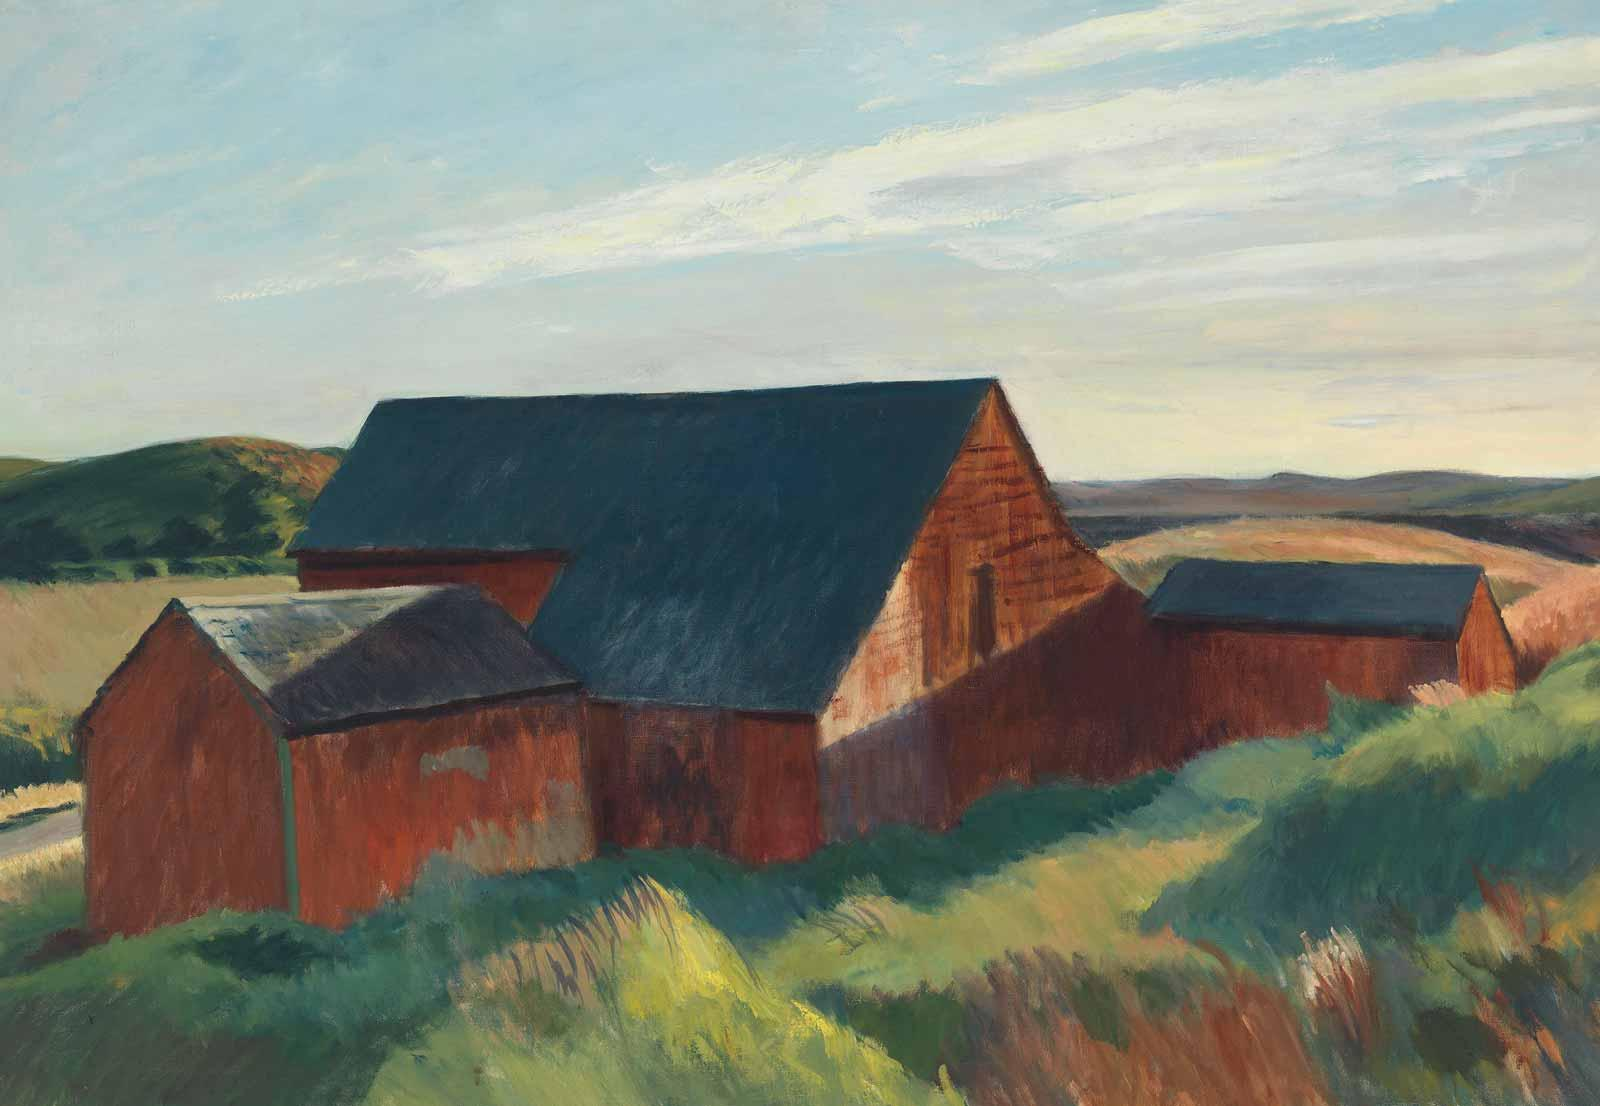 Edward Hopper, Cobb's Barns, South Truro, 1930–1933.